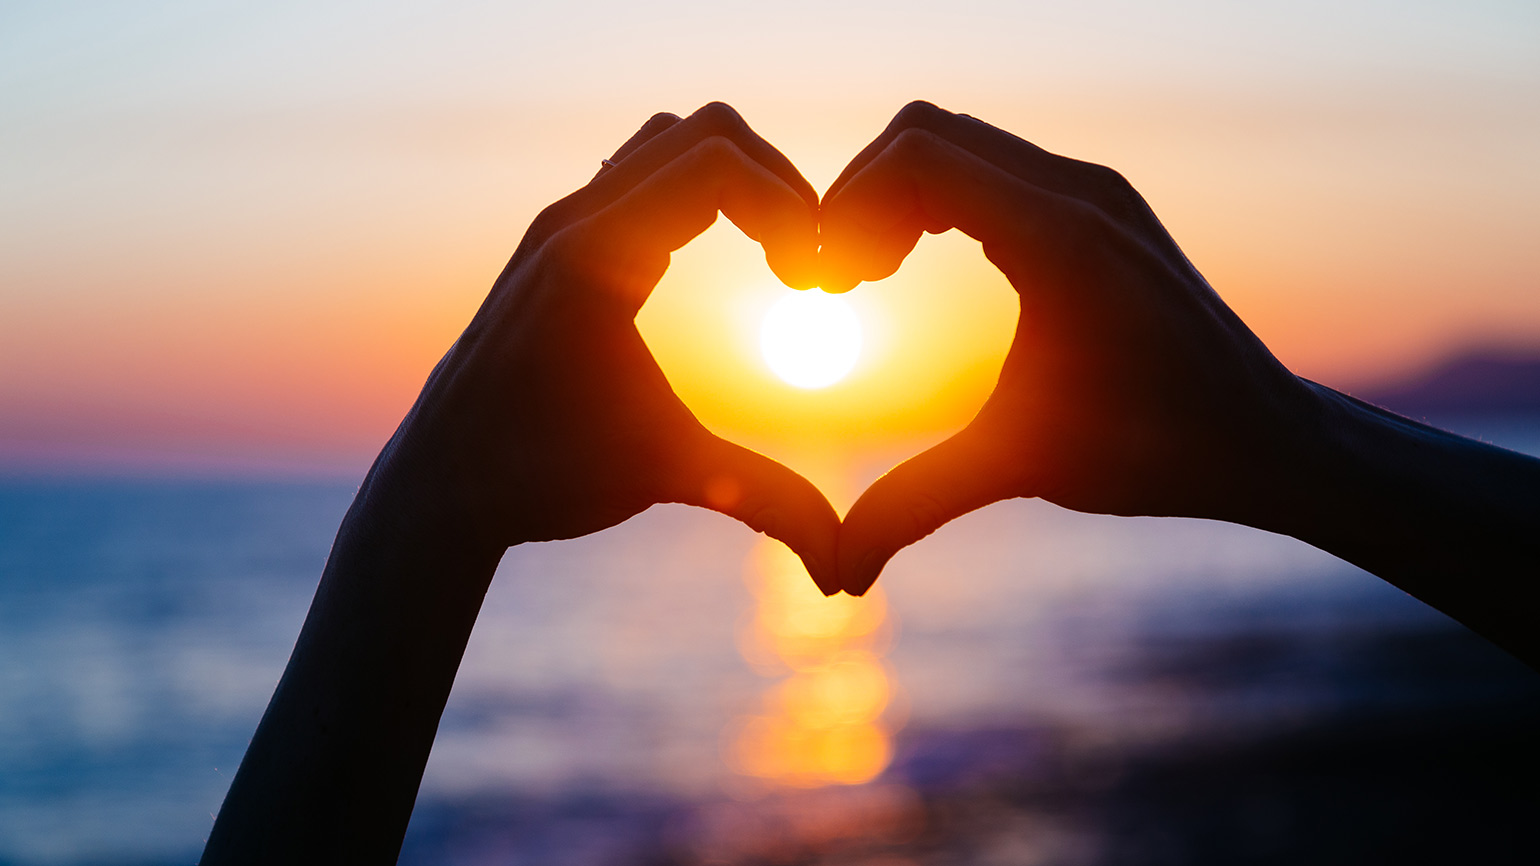 Fingers form a heart with the sunrise in the background